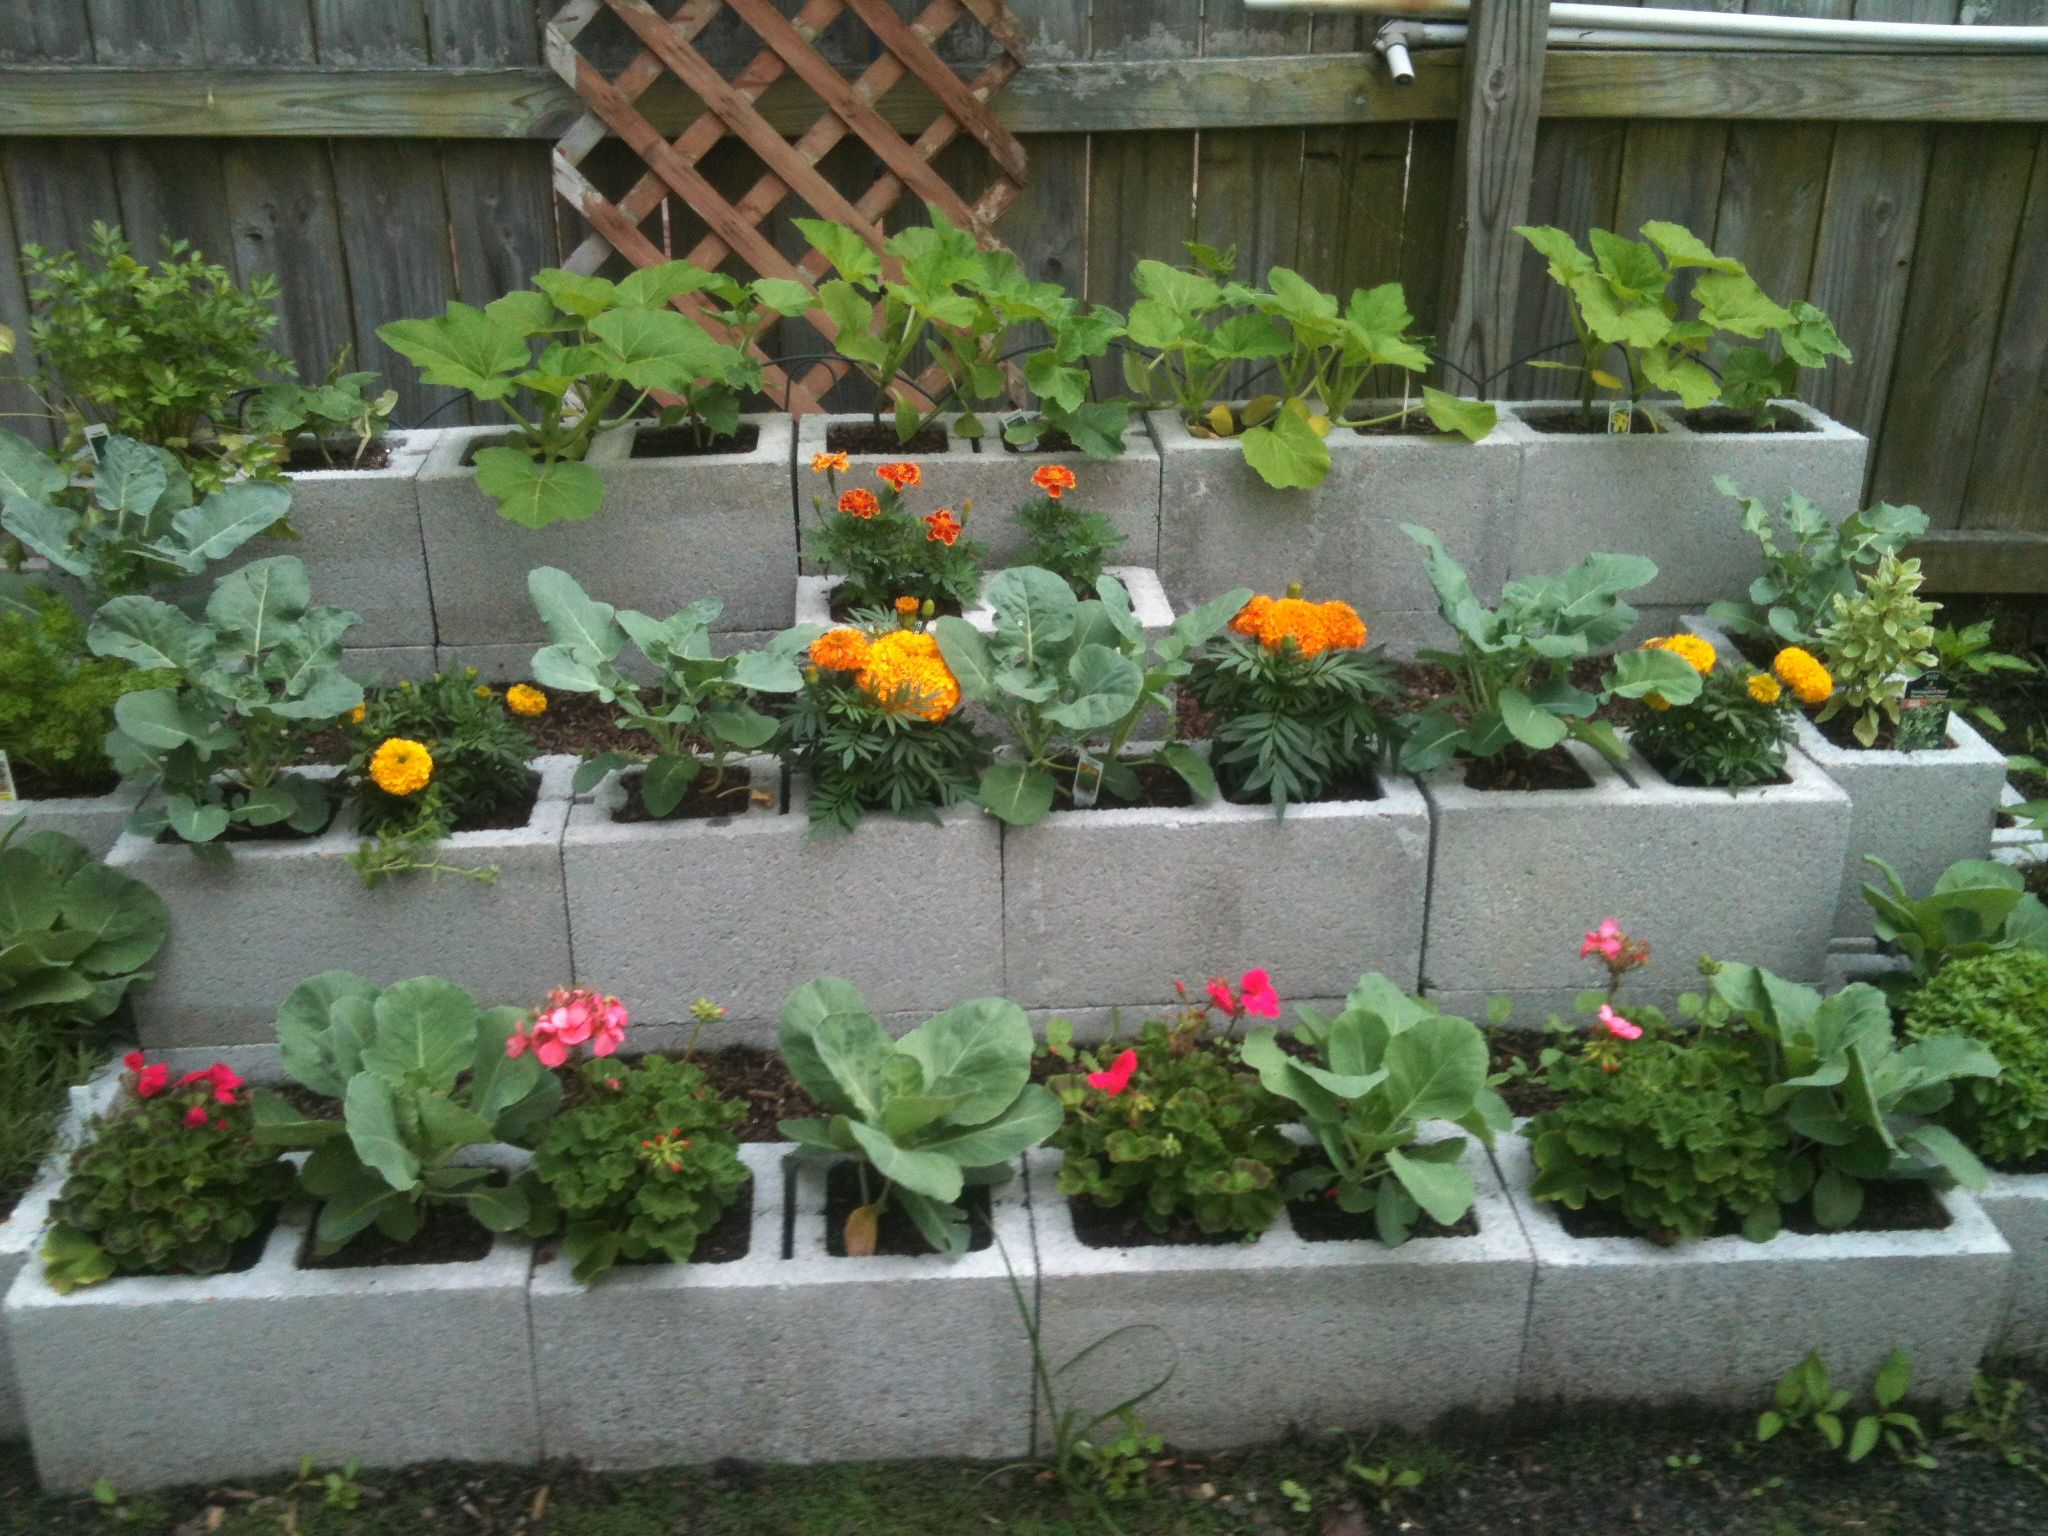 Cinder block raised bed I want to do this either the entire